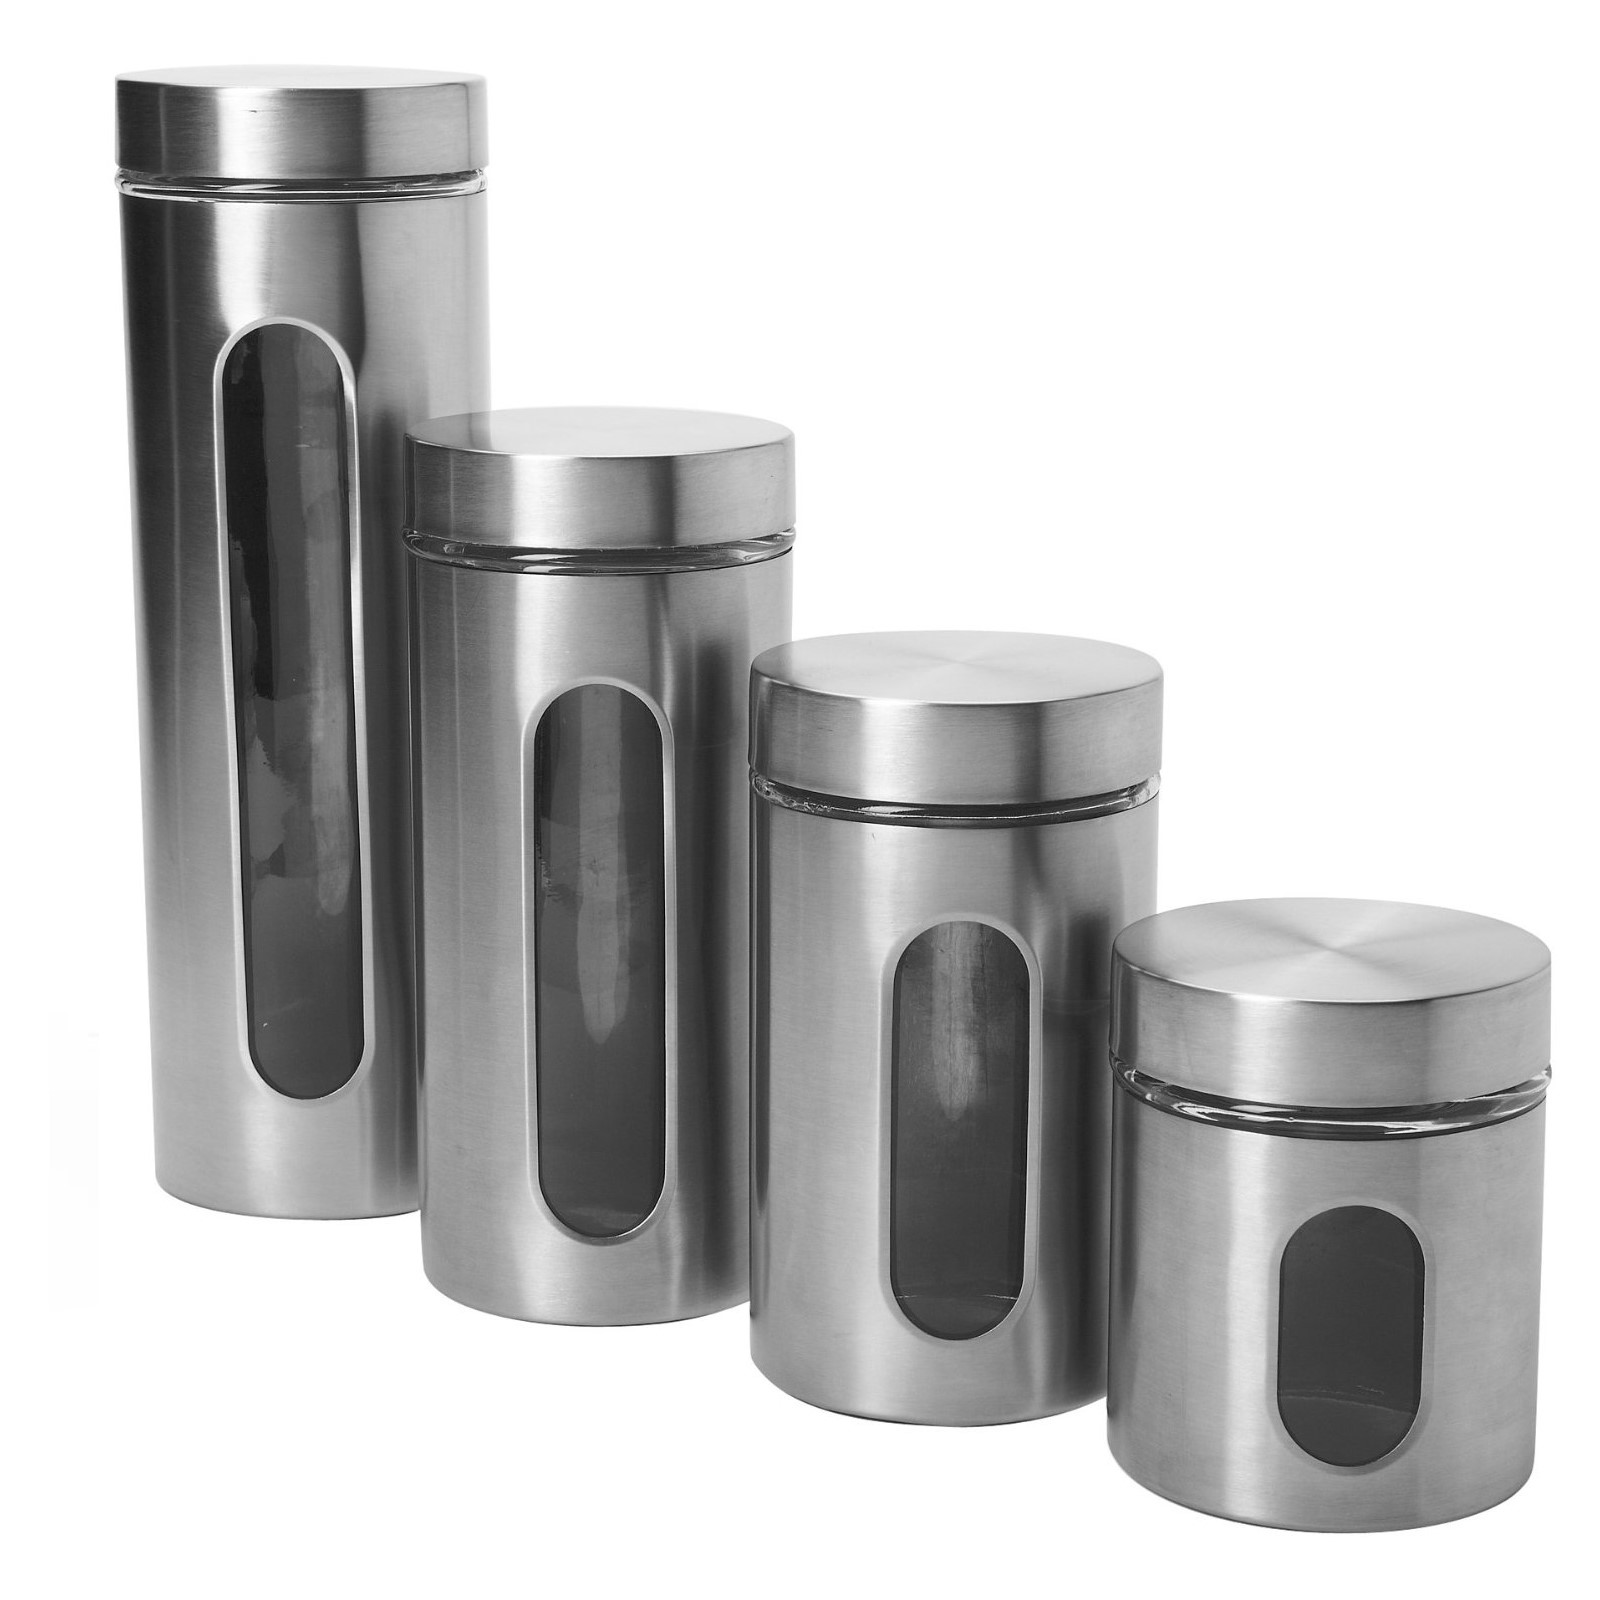 Anchor Hocking Food Canisters 4-Piece Palladian Window Set in Stainless Steel 97564A